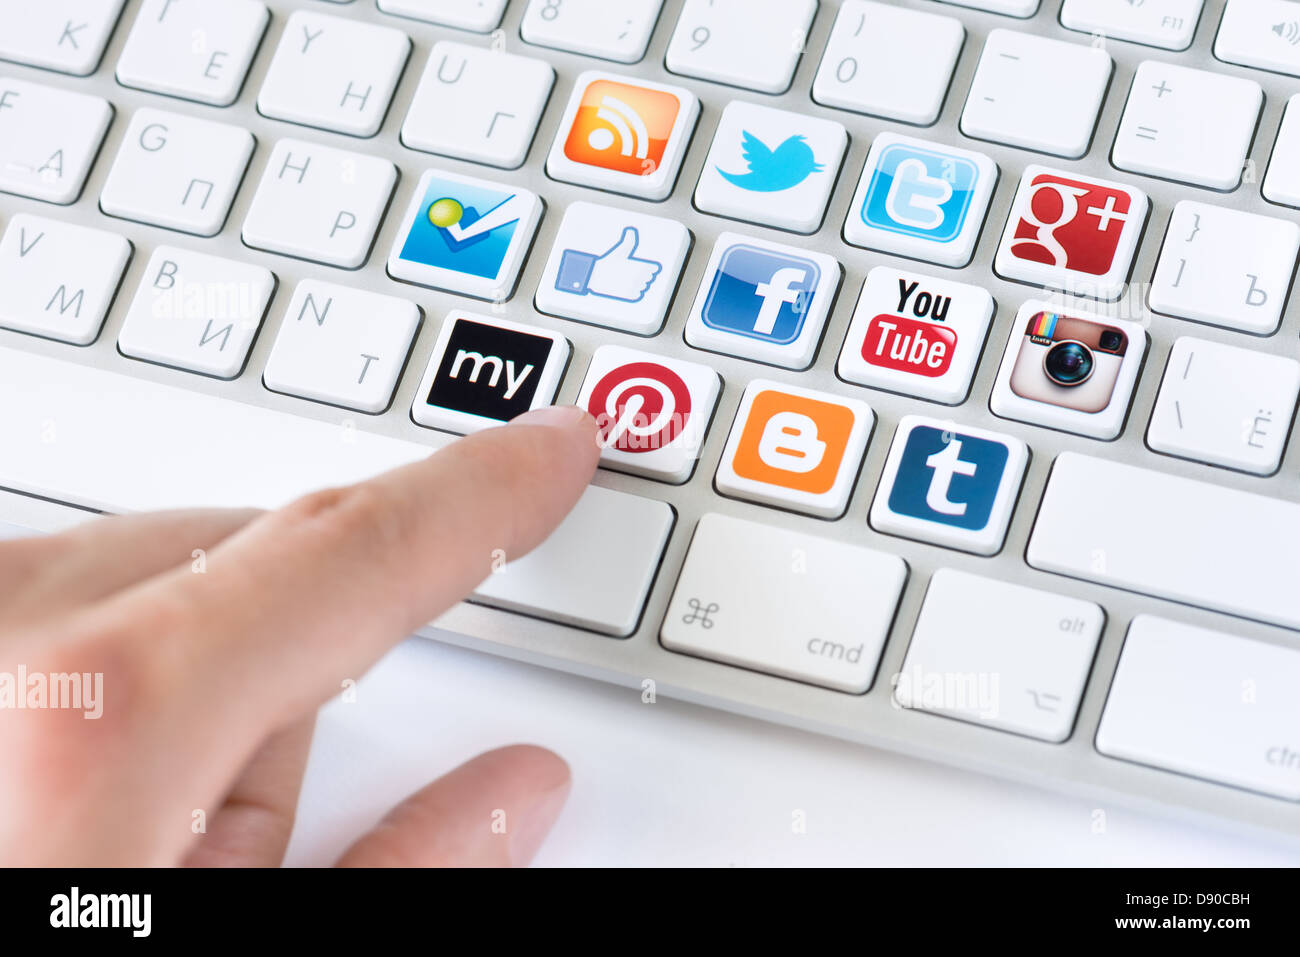 Hand pointing on keyboard with social media logotype collection of well-known social network brand's placed - Stock Image